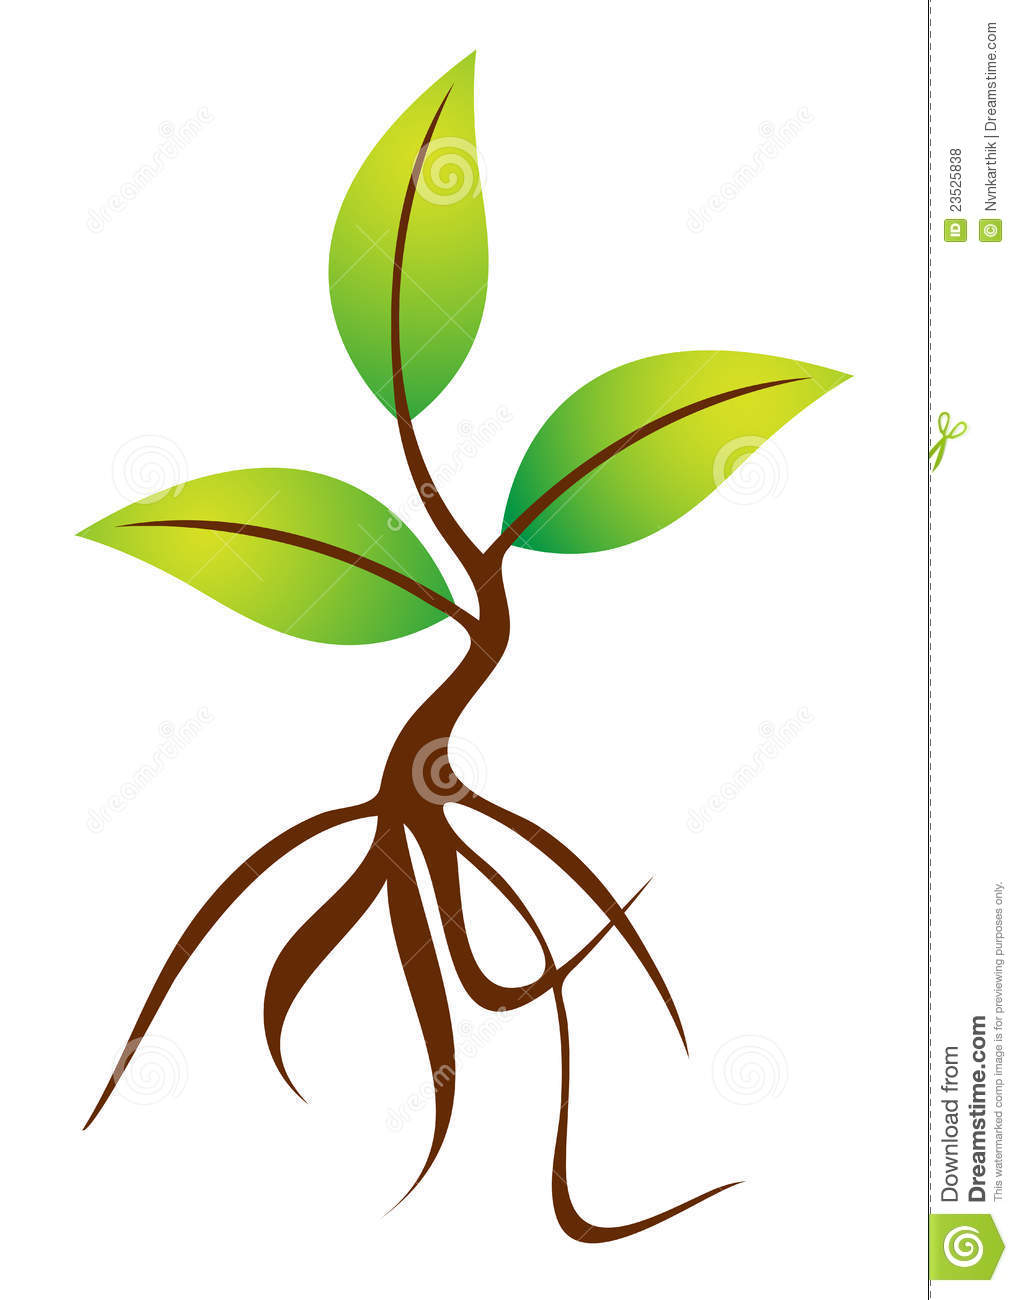 Plant With Roots Royalty Free Stock Photos - Image: 23525838